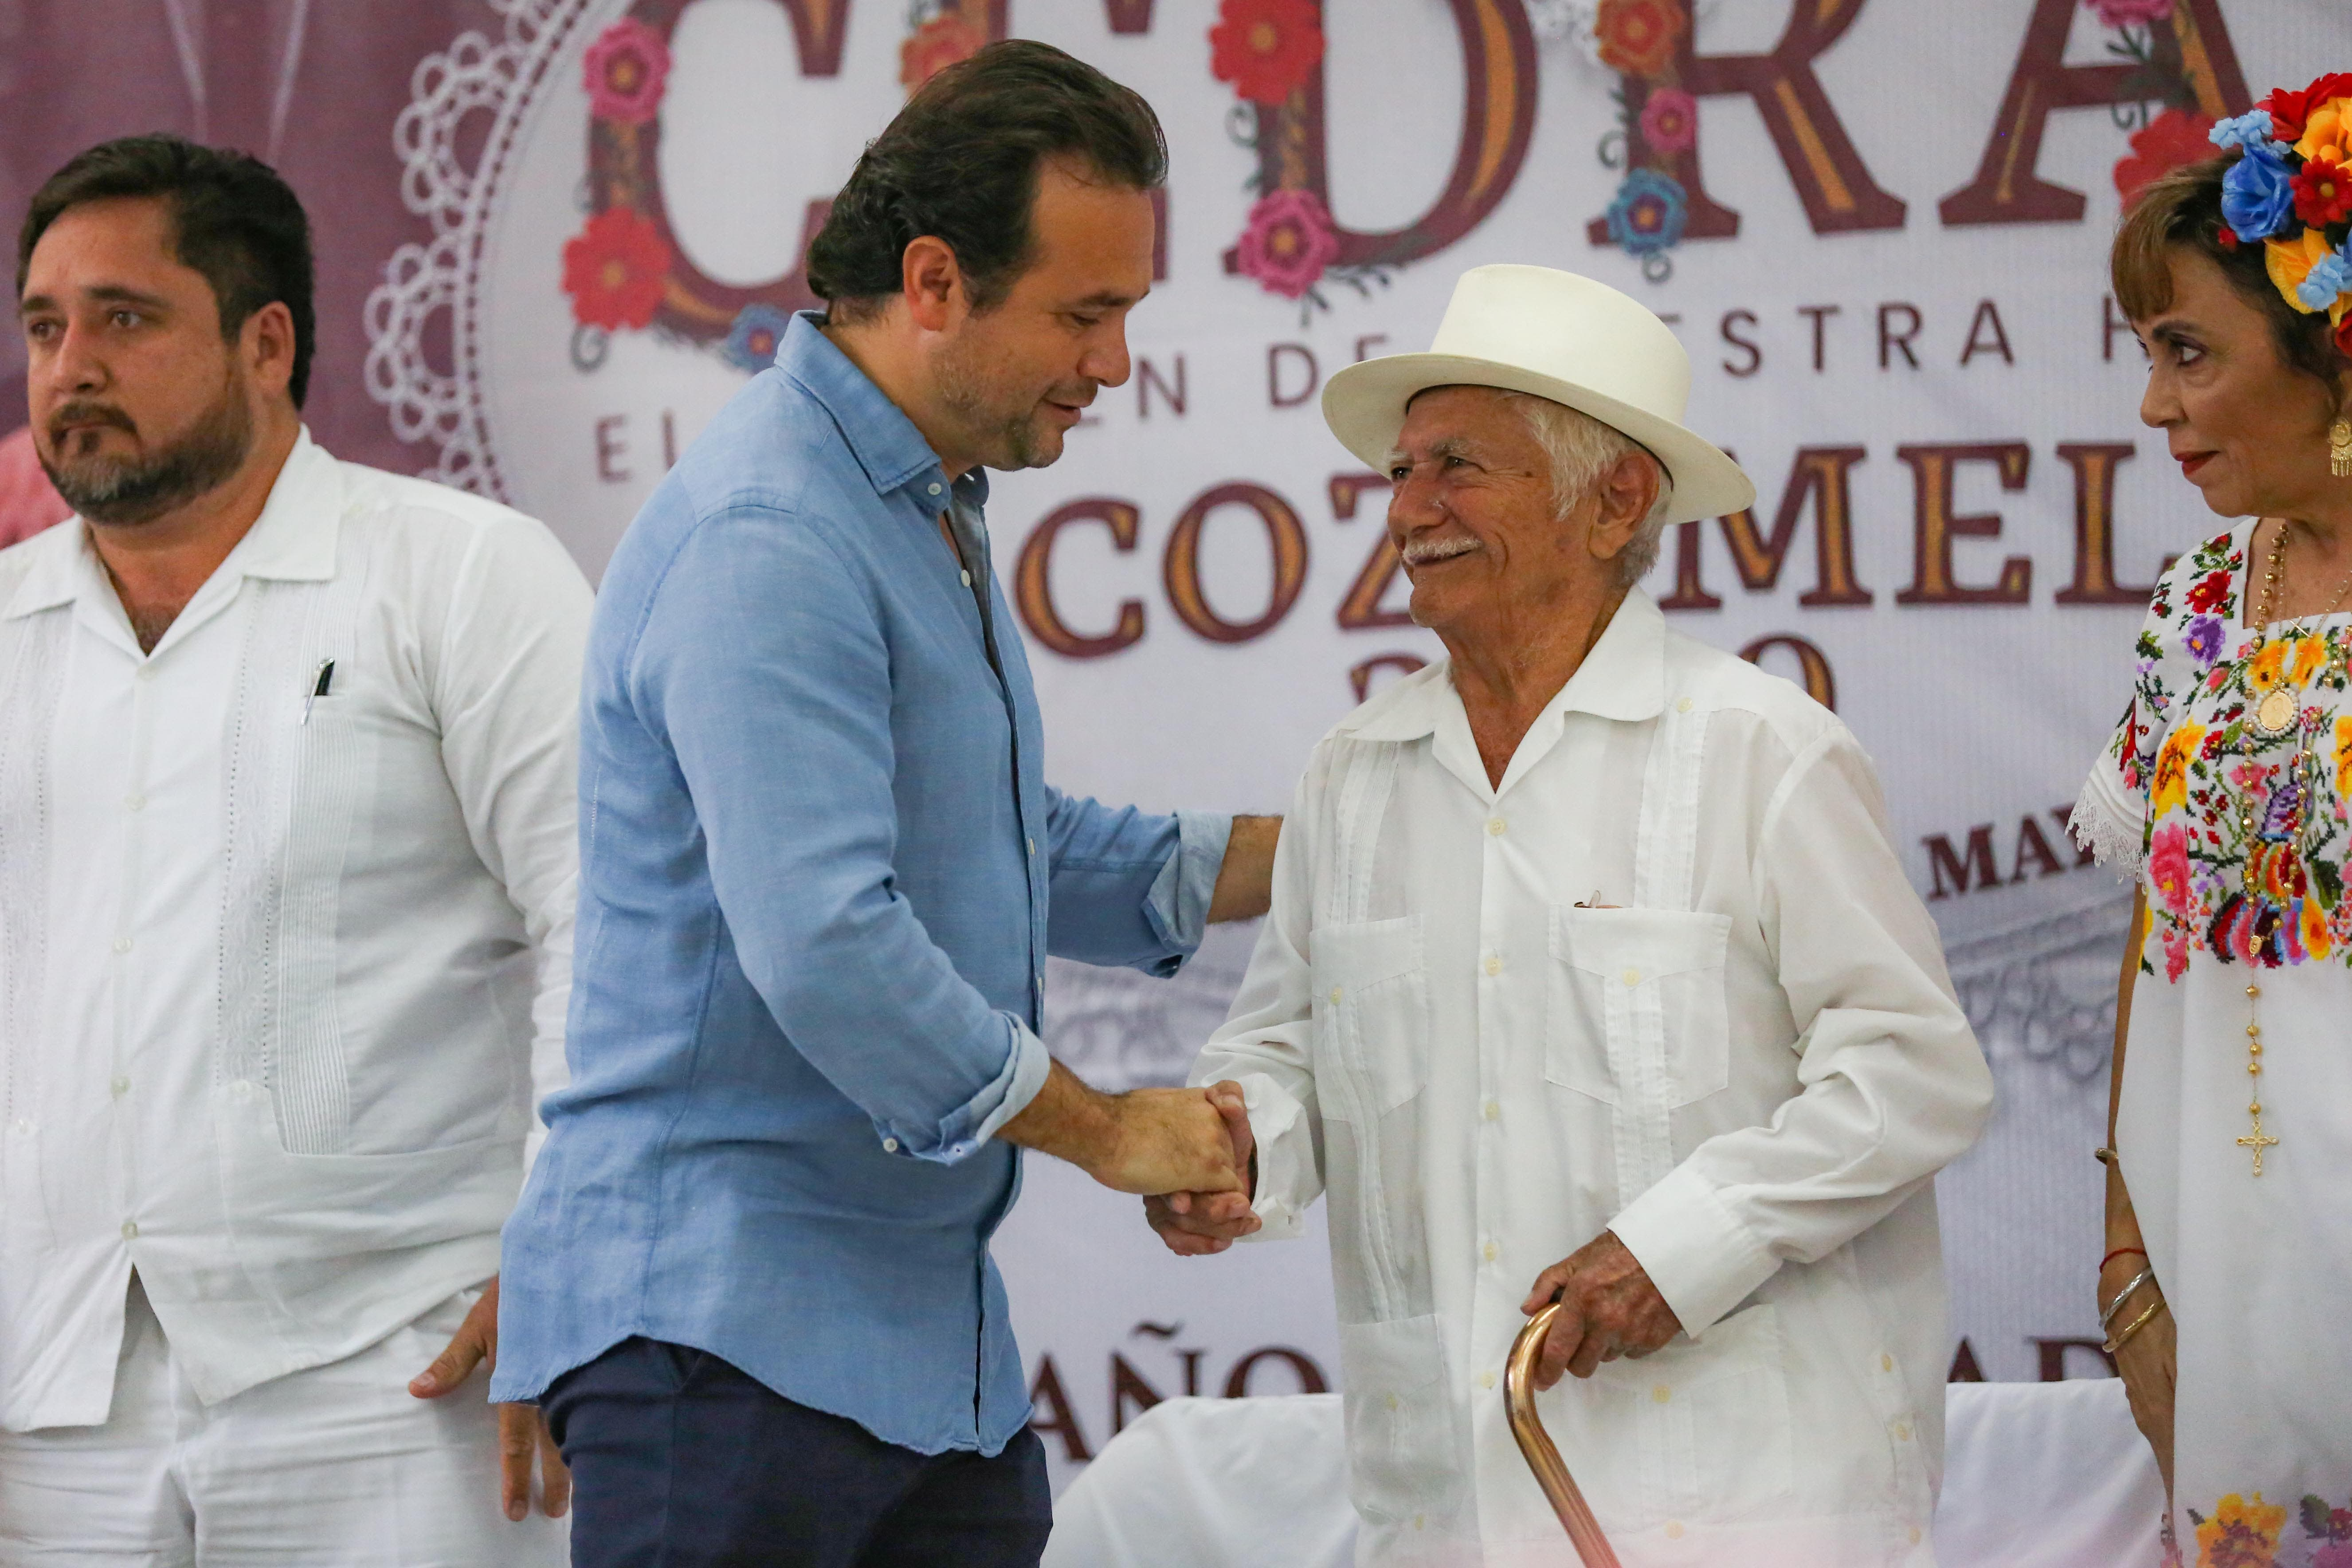 El Presidente Municipal fomenta la identidad histórica-cultural de Cozumel y contribuye a mantener una tradición de más de 170 años, que une a las familias y atrae a visitantes nacionales y extranjeros